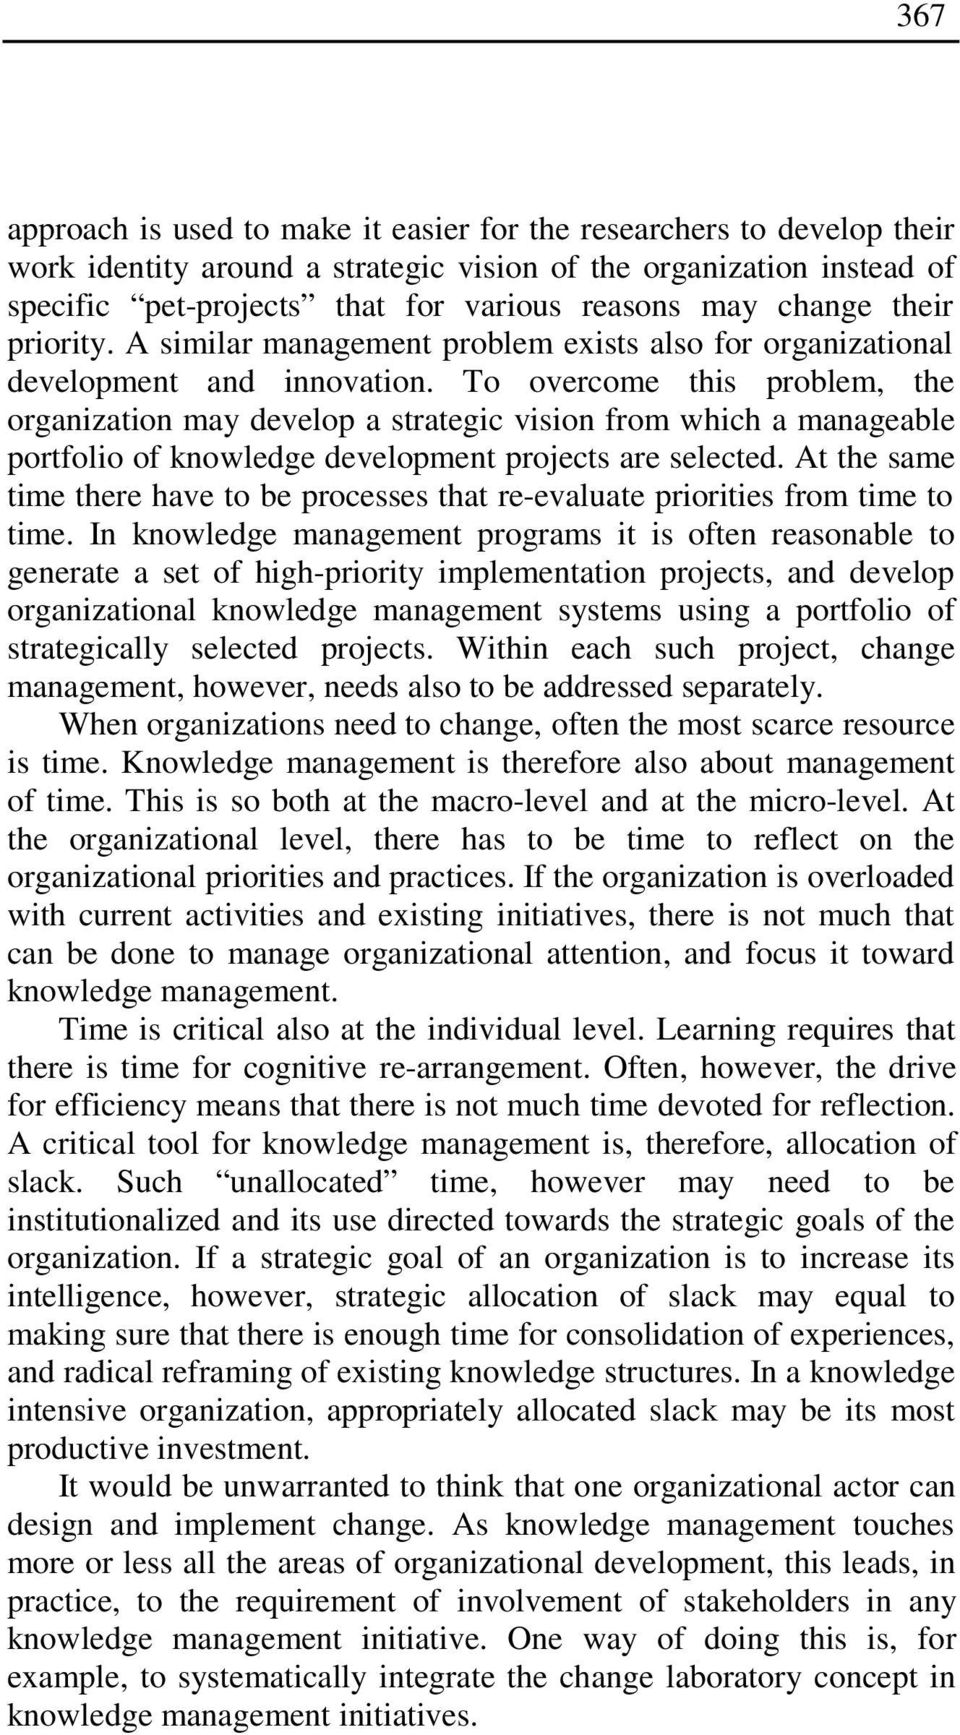 To overcome this problem, the organization may develop a strategic vision from which a manageable portfolio of knowledge development projects are selected.